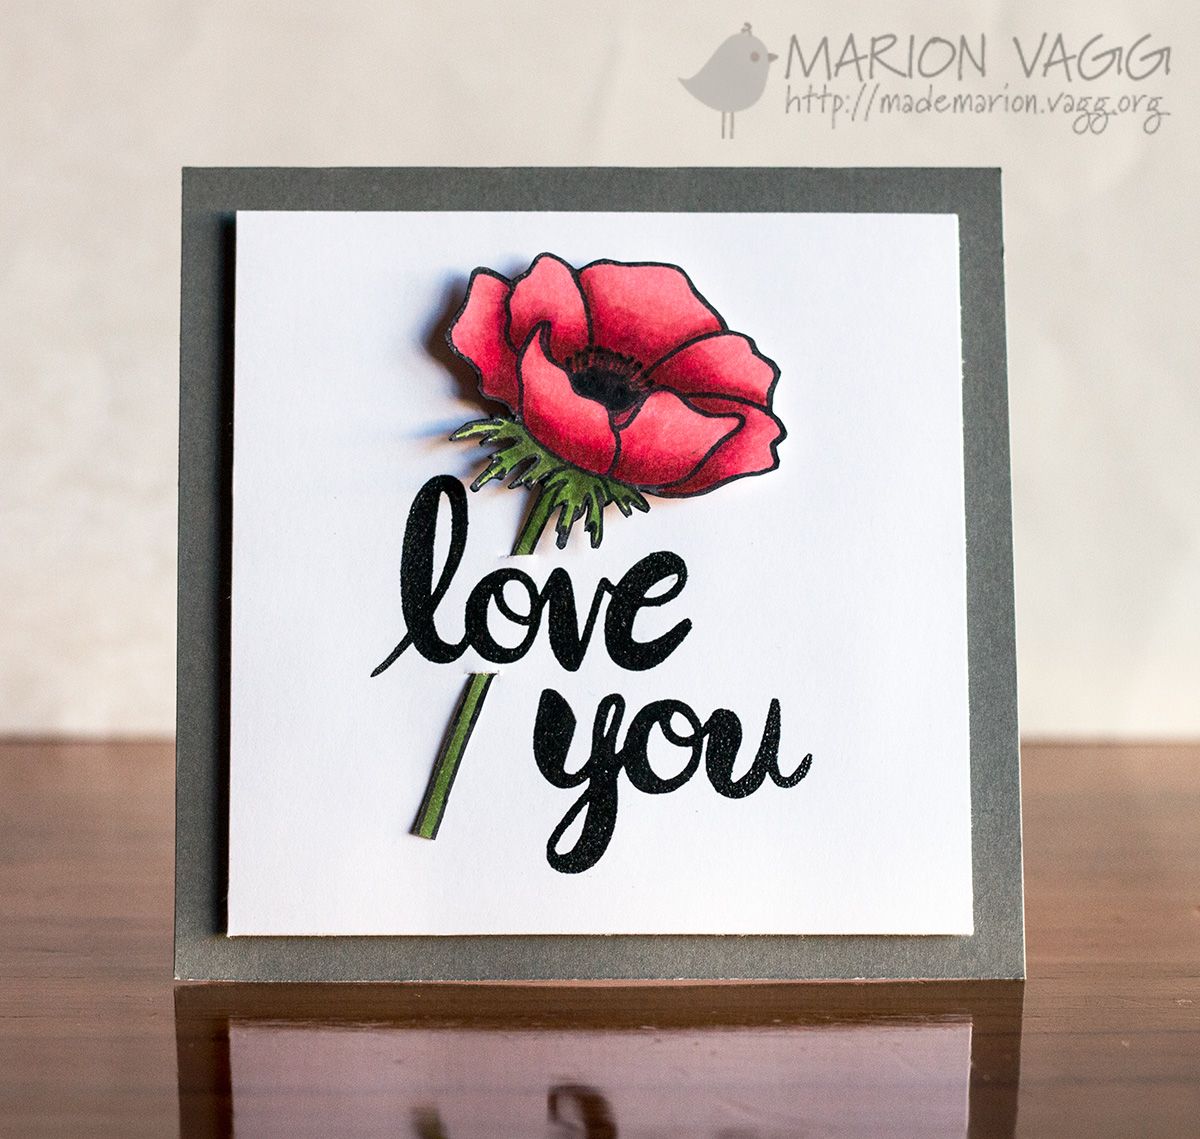 Love You JD | Marion Vagg